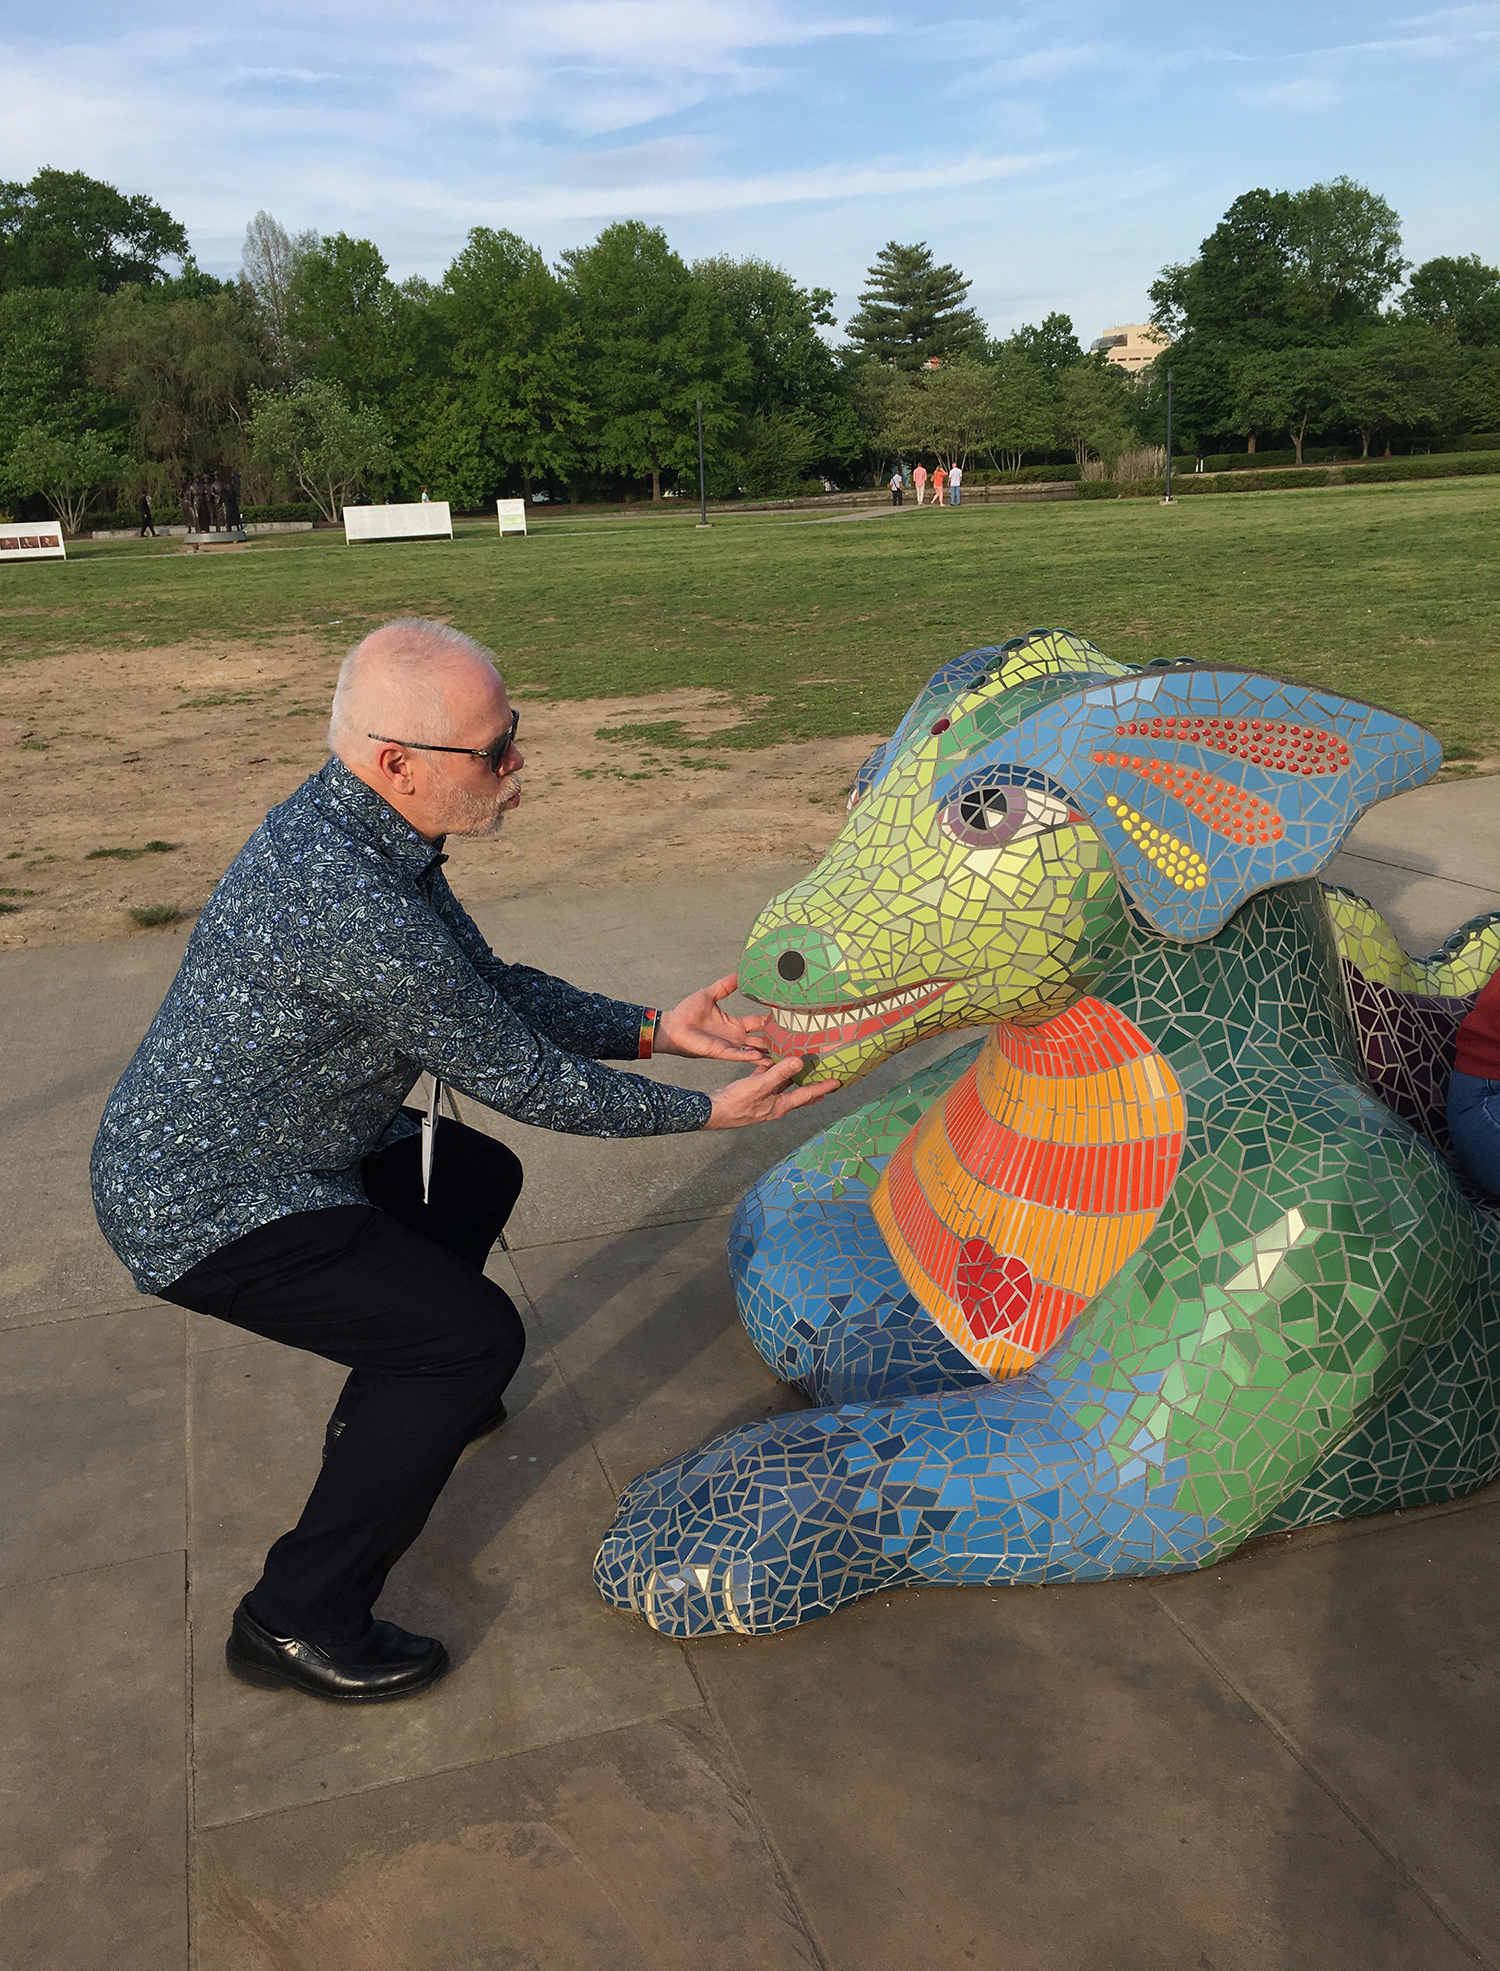 Outside of the Parthenon, for the duration of our conference, is  Lizzie the Dragon, by Sherri Warner Hunter. She normally lives at Vanderbilt Children's Hospital, but for the conference, she greeted us! And Scott had to ham it up…